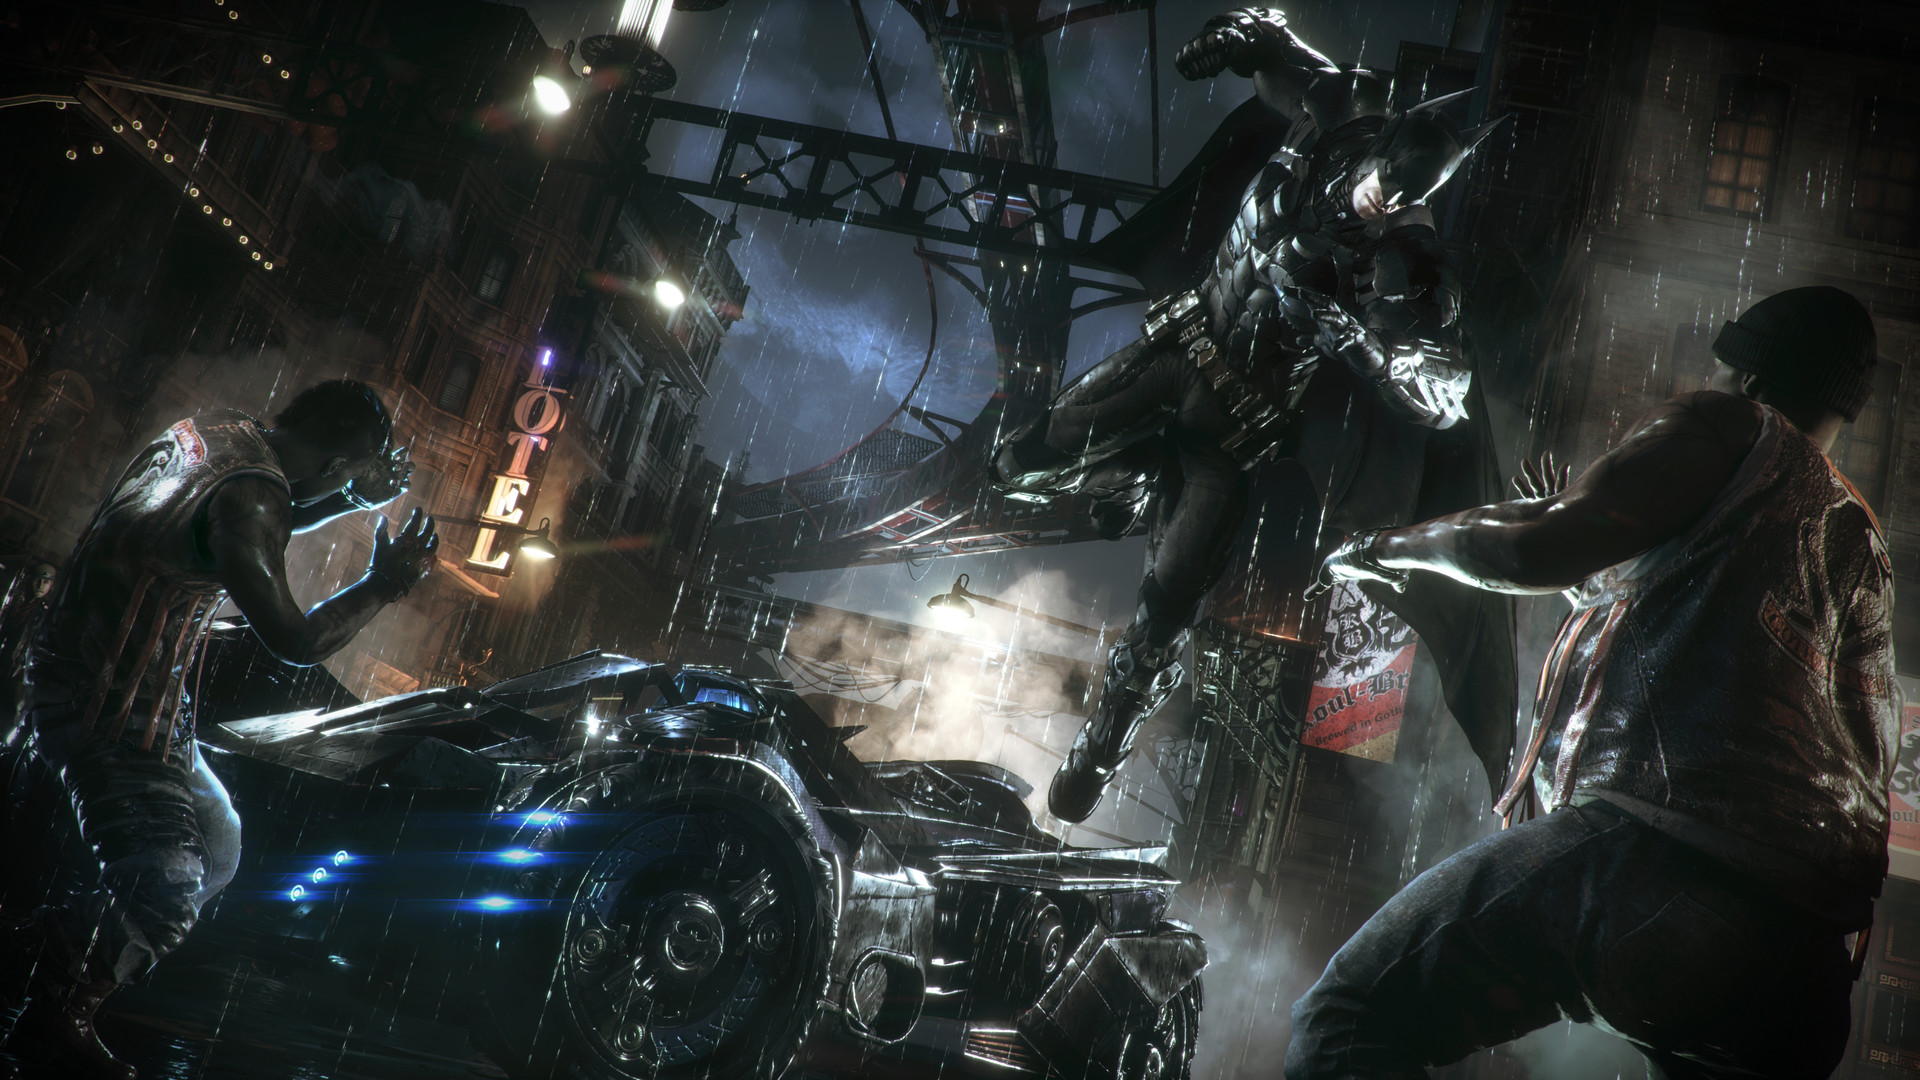 download batman arkham knight - cpy cracked conspir4cy full version reloaded singlelink iso multi language free for pc